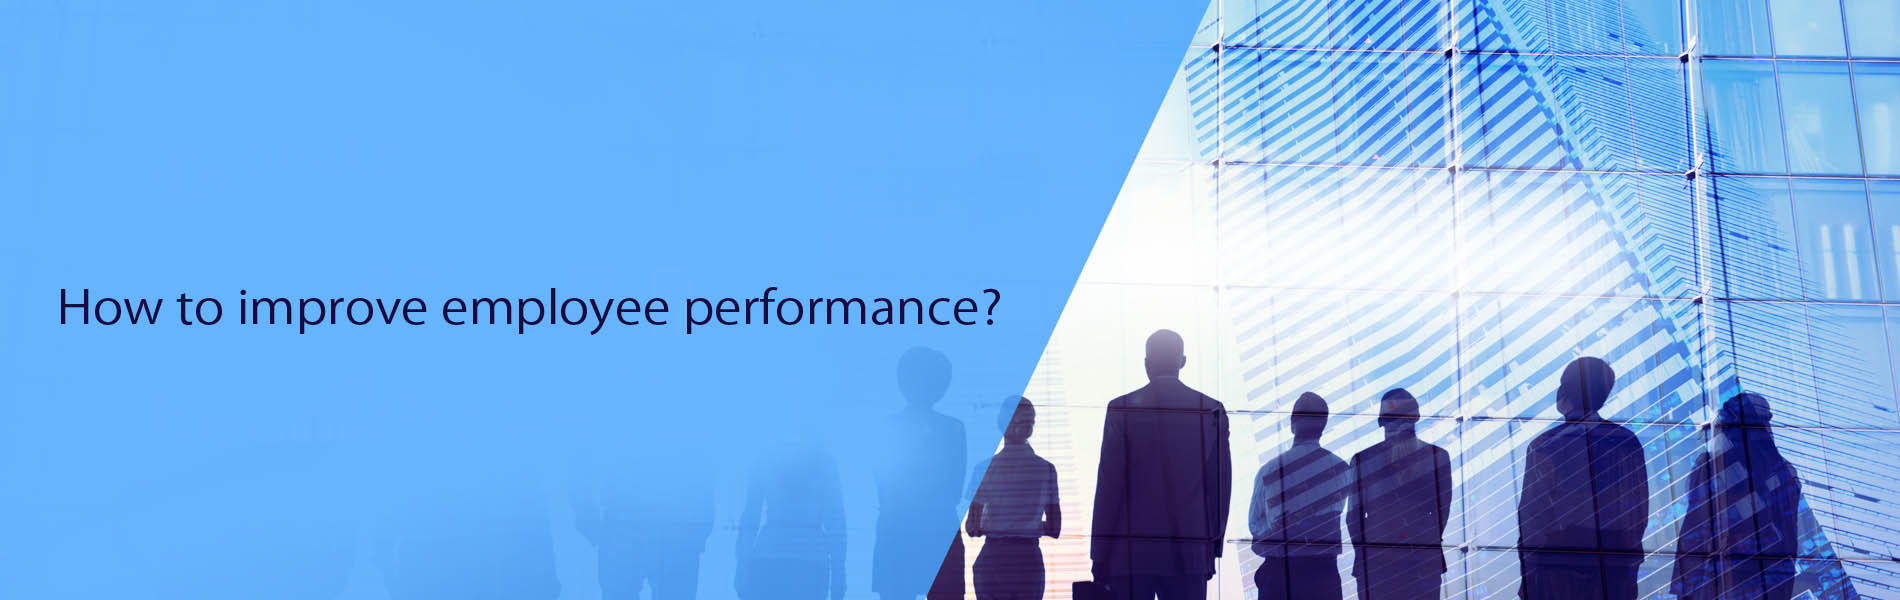 How to improve employee performance?